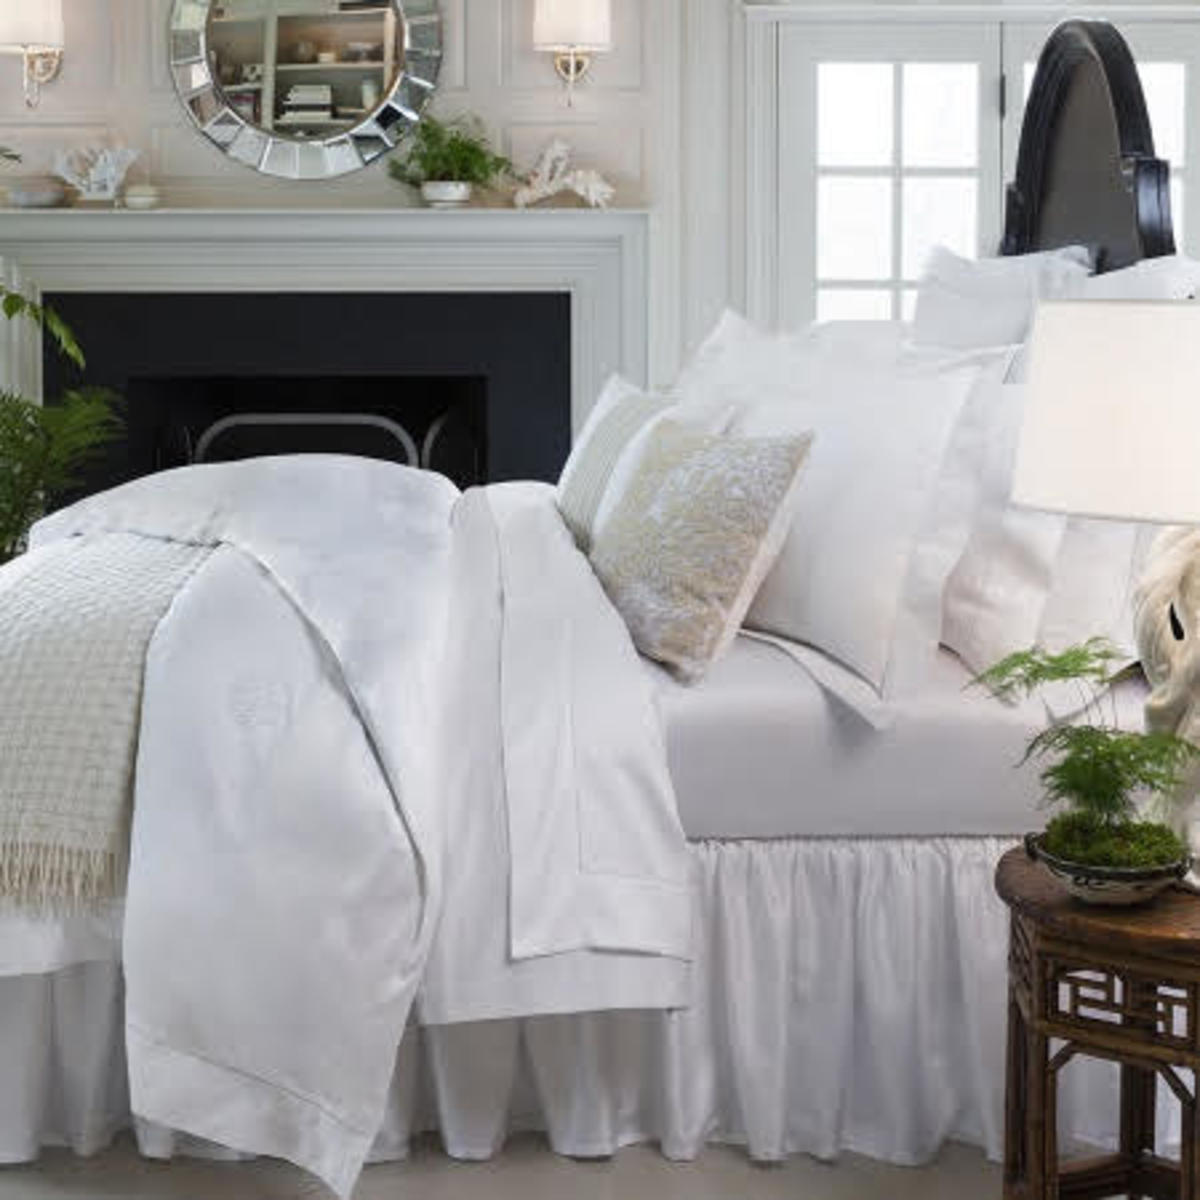 Luxurious bed linens add an elegant touch to the bedroom.